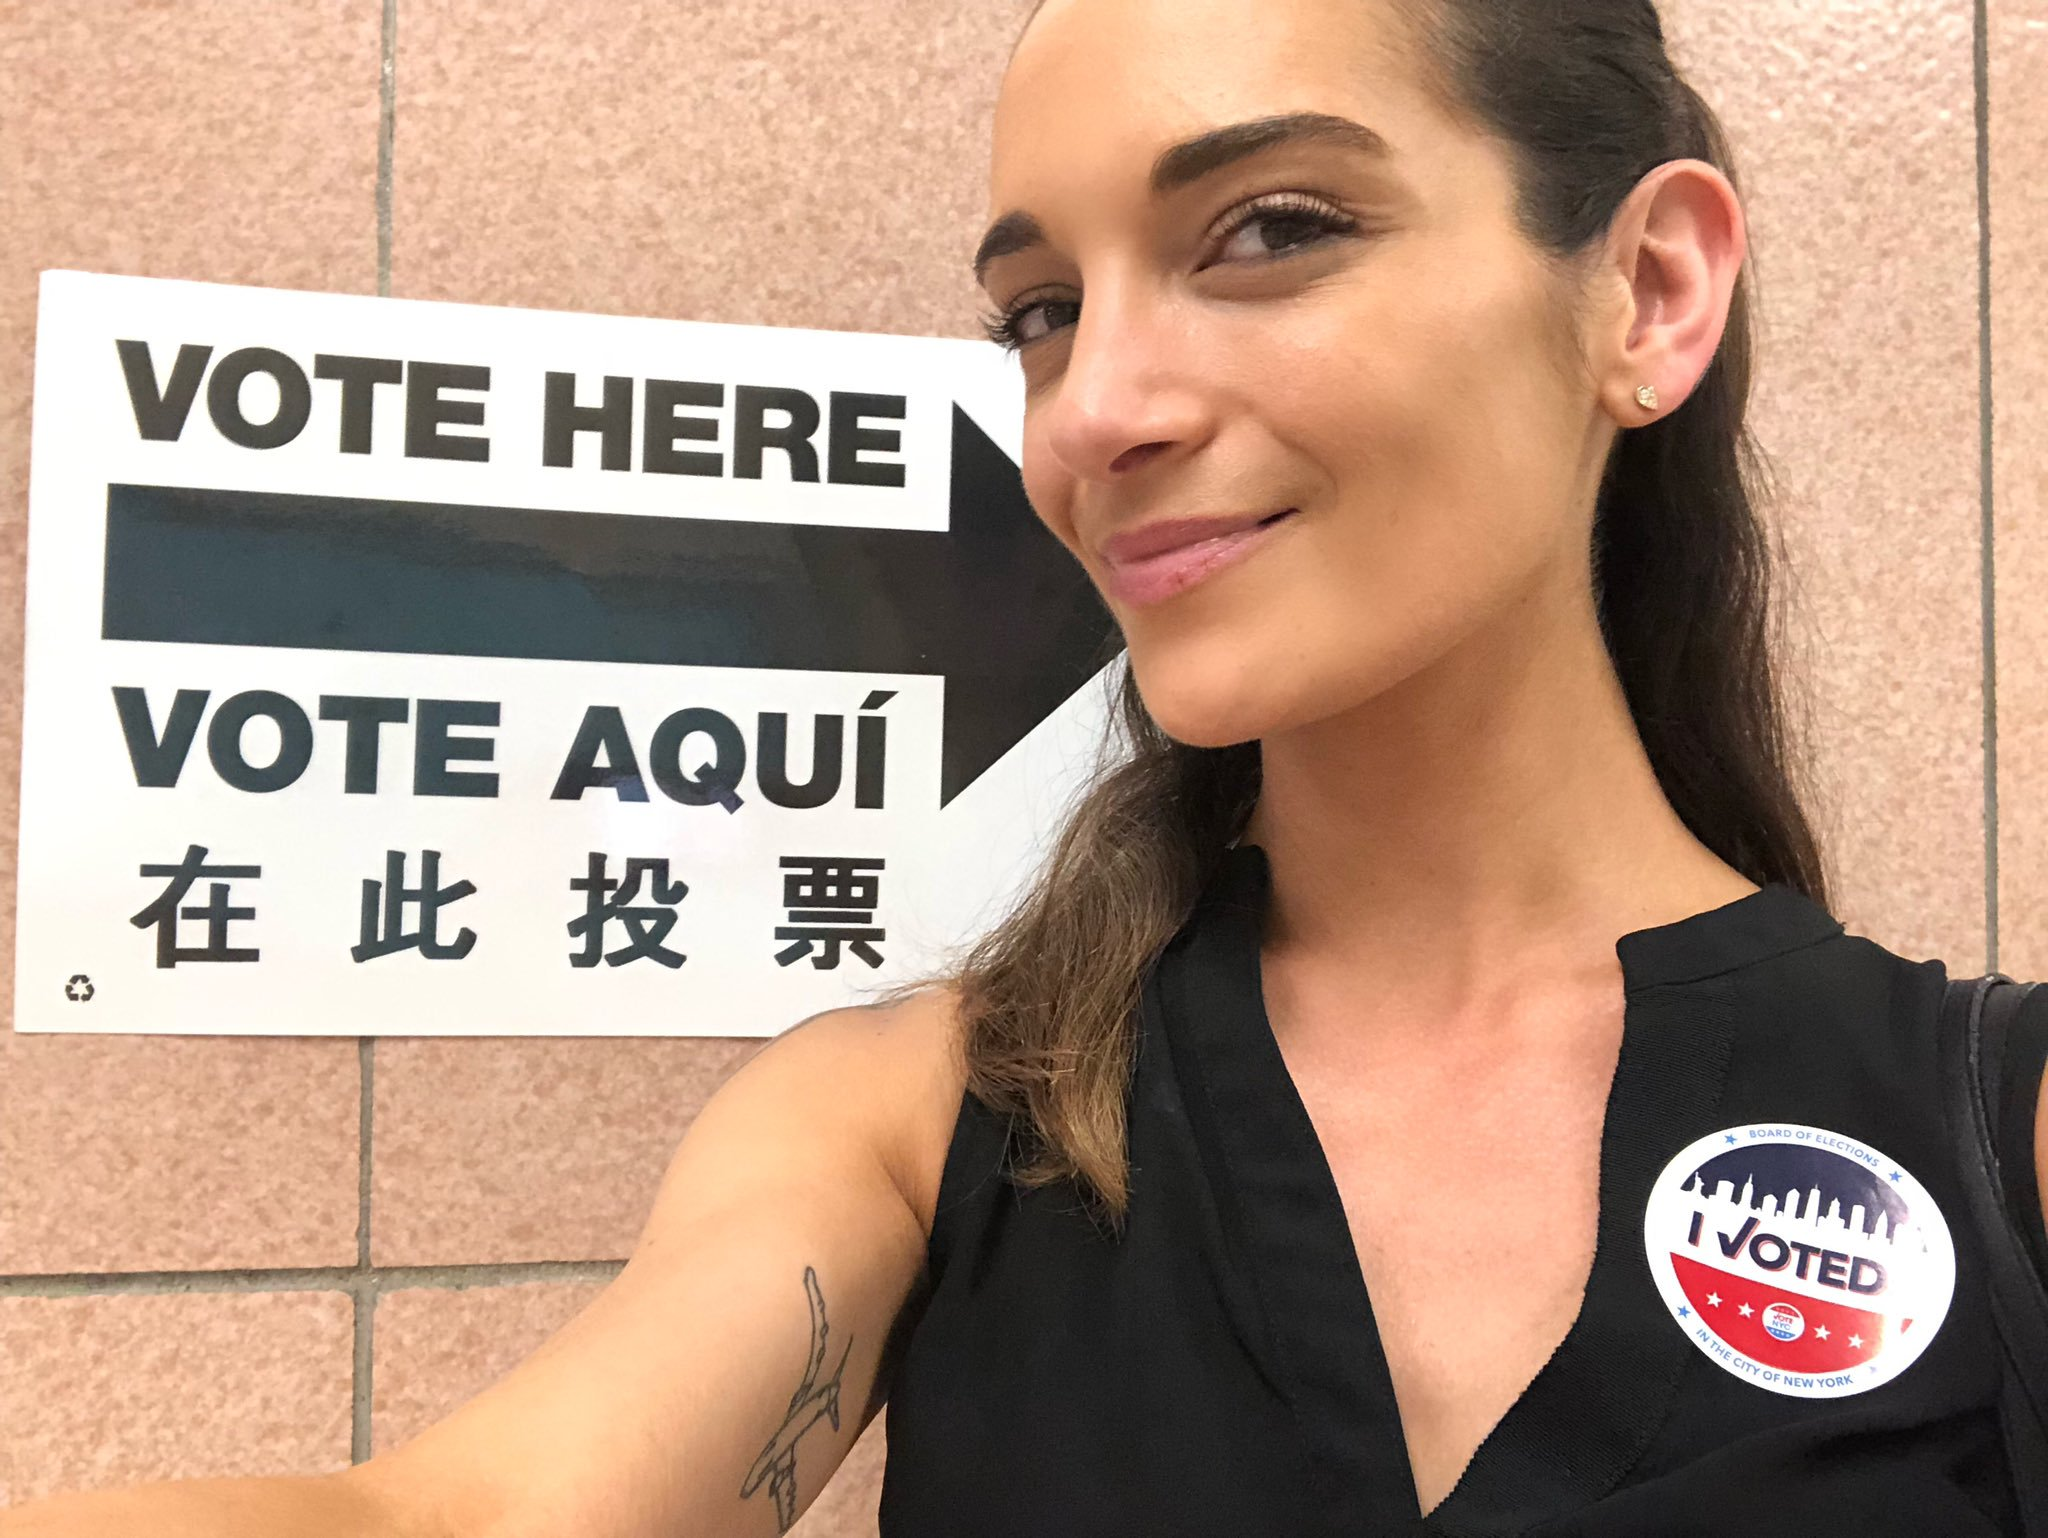 Westlake Legal Group julie Dem socialist Julia Salazar allegedly dipped into trust fund during state senate campaign: report New York Post Max Jaeger fox-news/us/us-regions/northeast/new-york fox-news/politics/state-and-local fox-news/politics/elections/campaigning fox-news/politics fnc/politics fnc Bernadette Hogan b22f30f9-a349-5241-b9dd-80d4834163c0 article